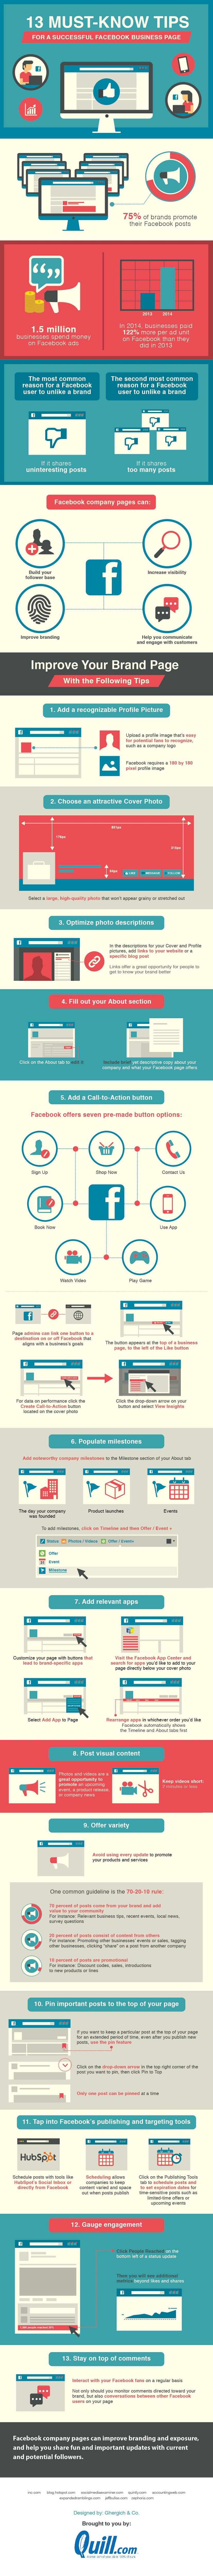 facebook-business-page-tips-infographic